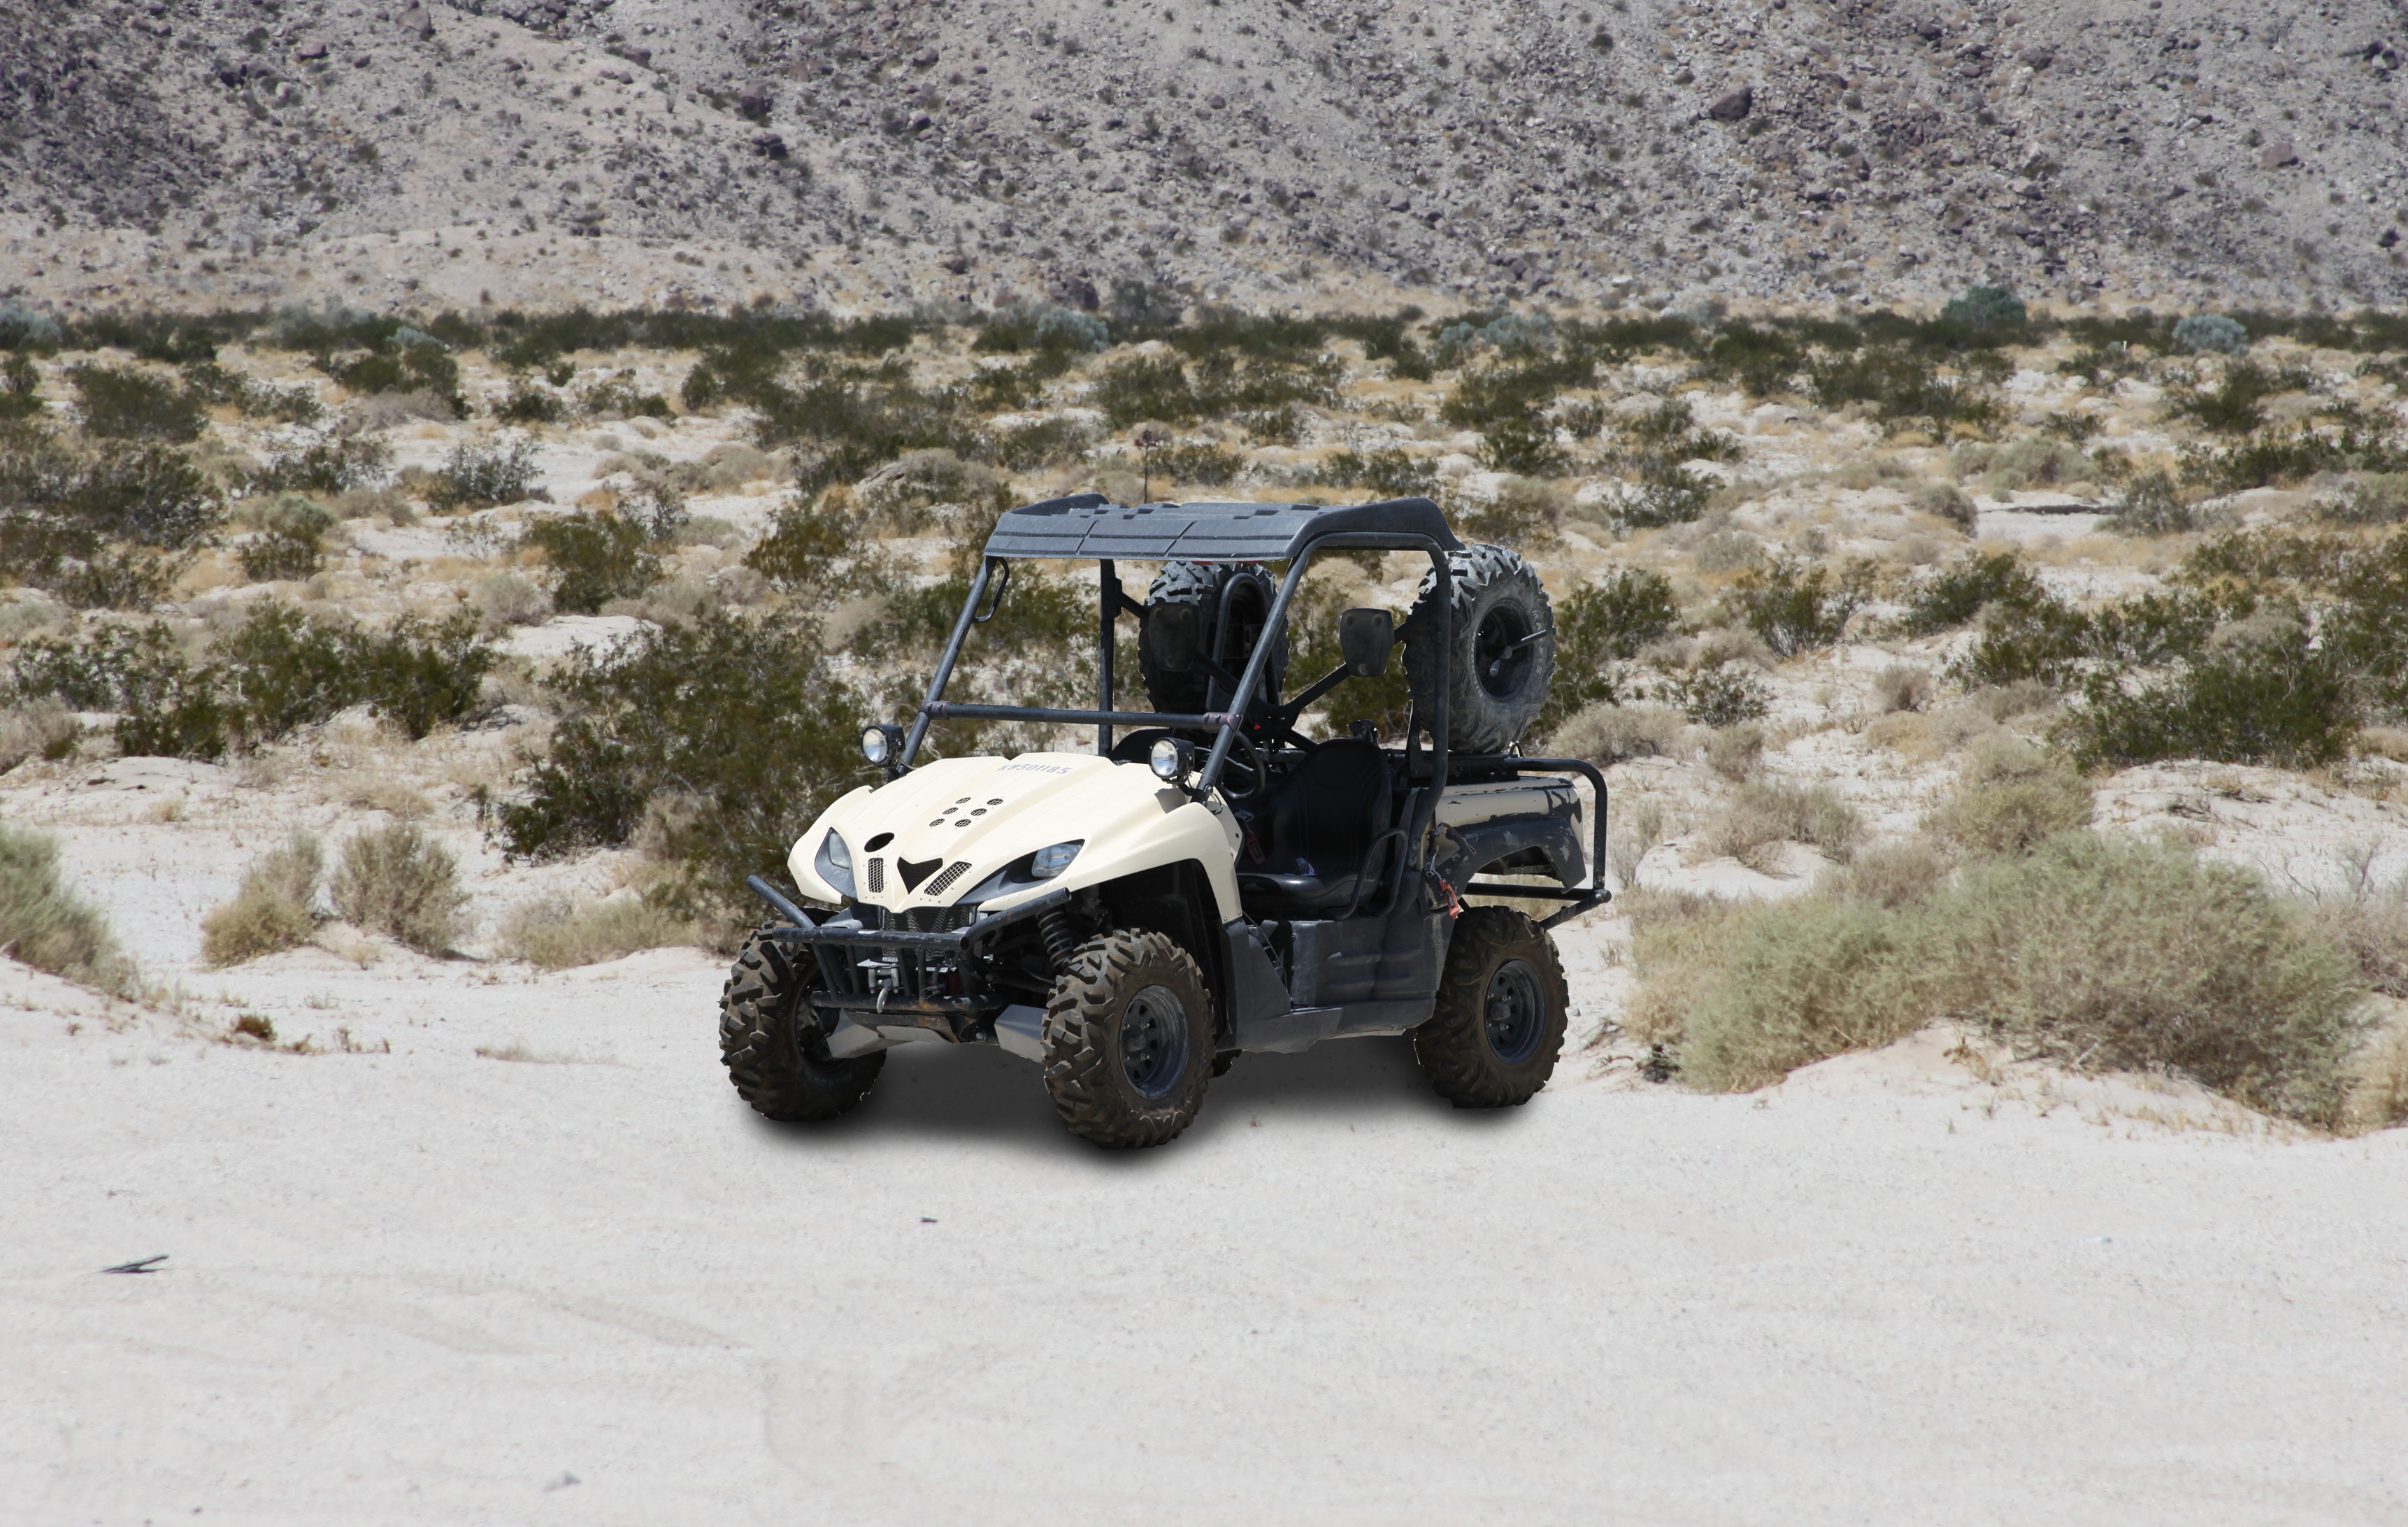 The Lightweight Tactical All-Terrain Vehicle used by SEALs.